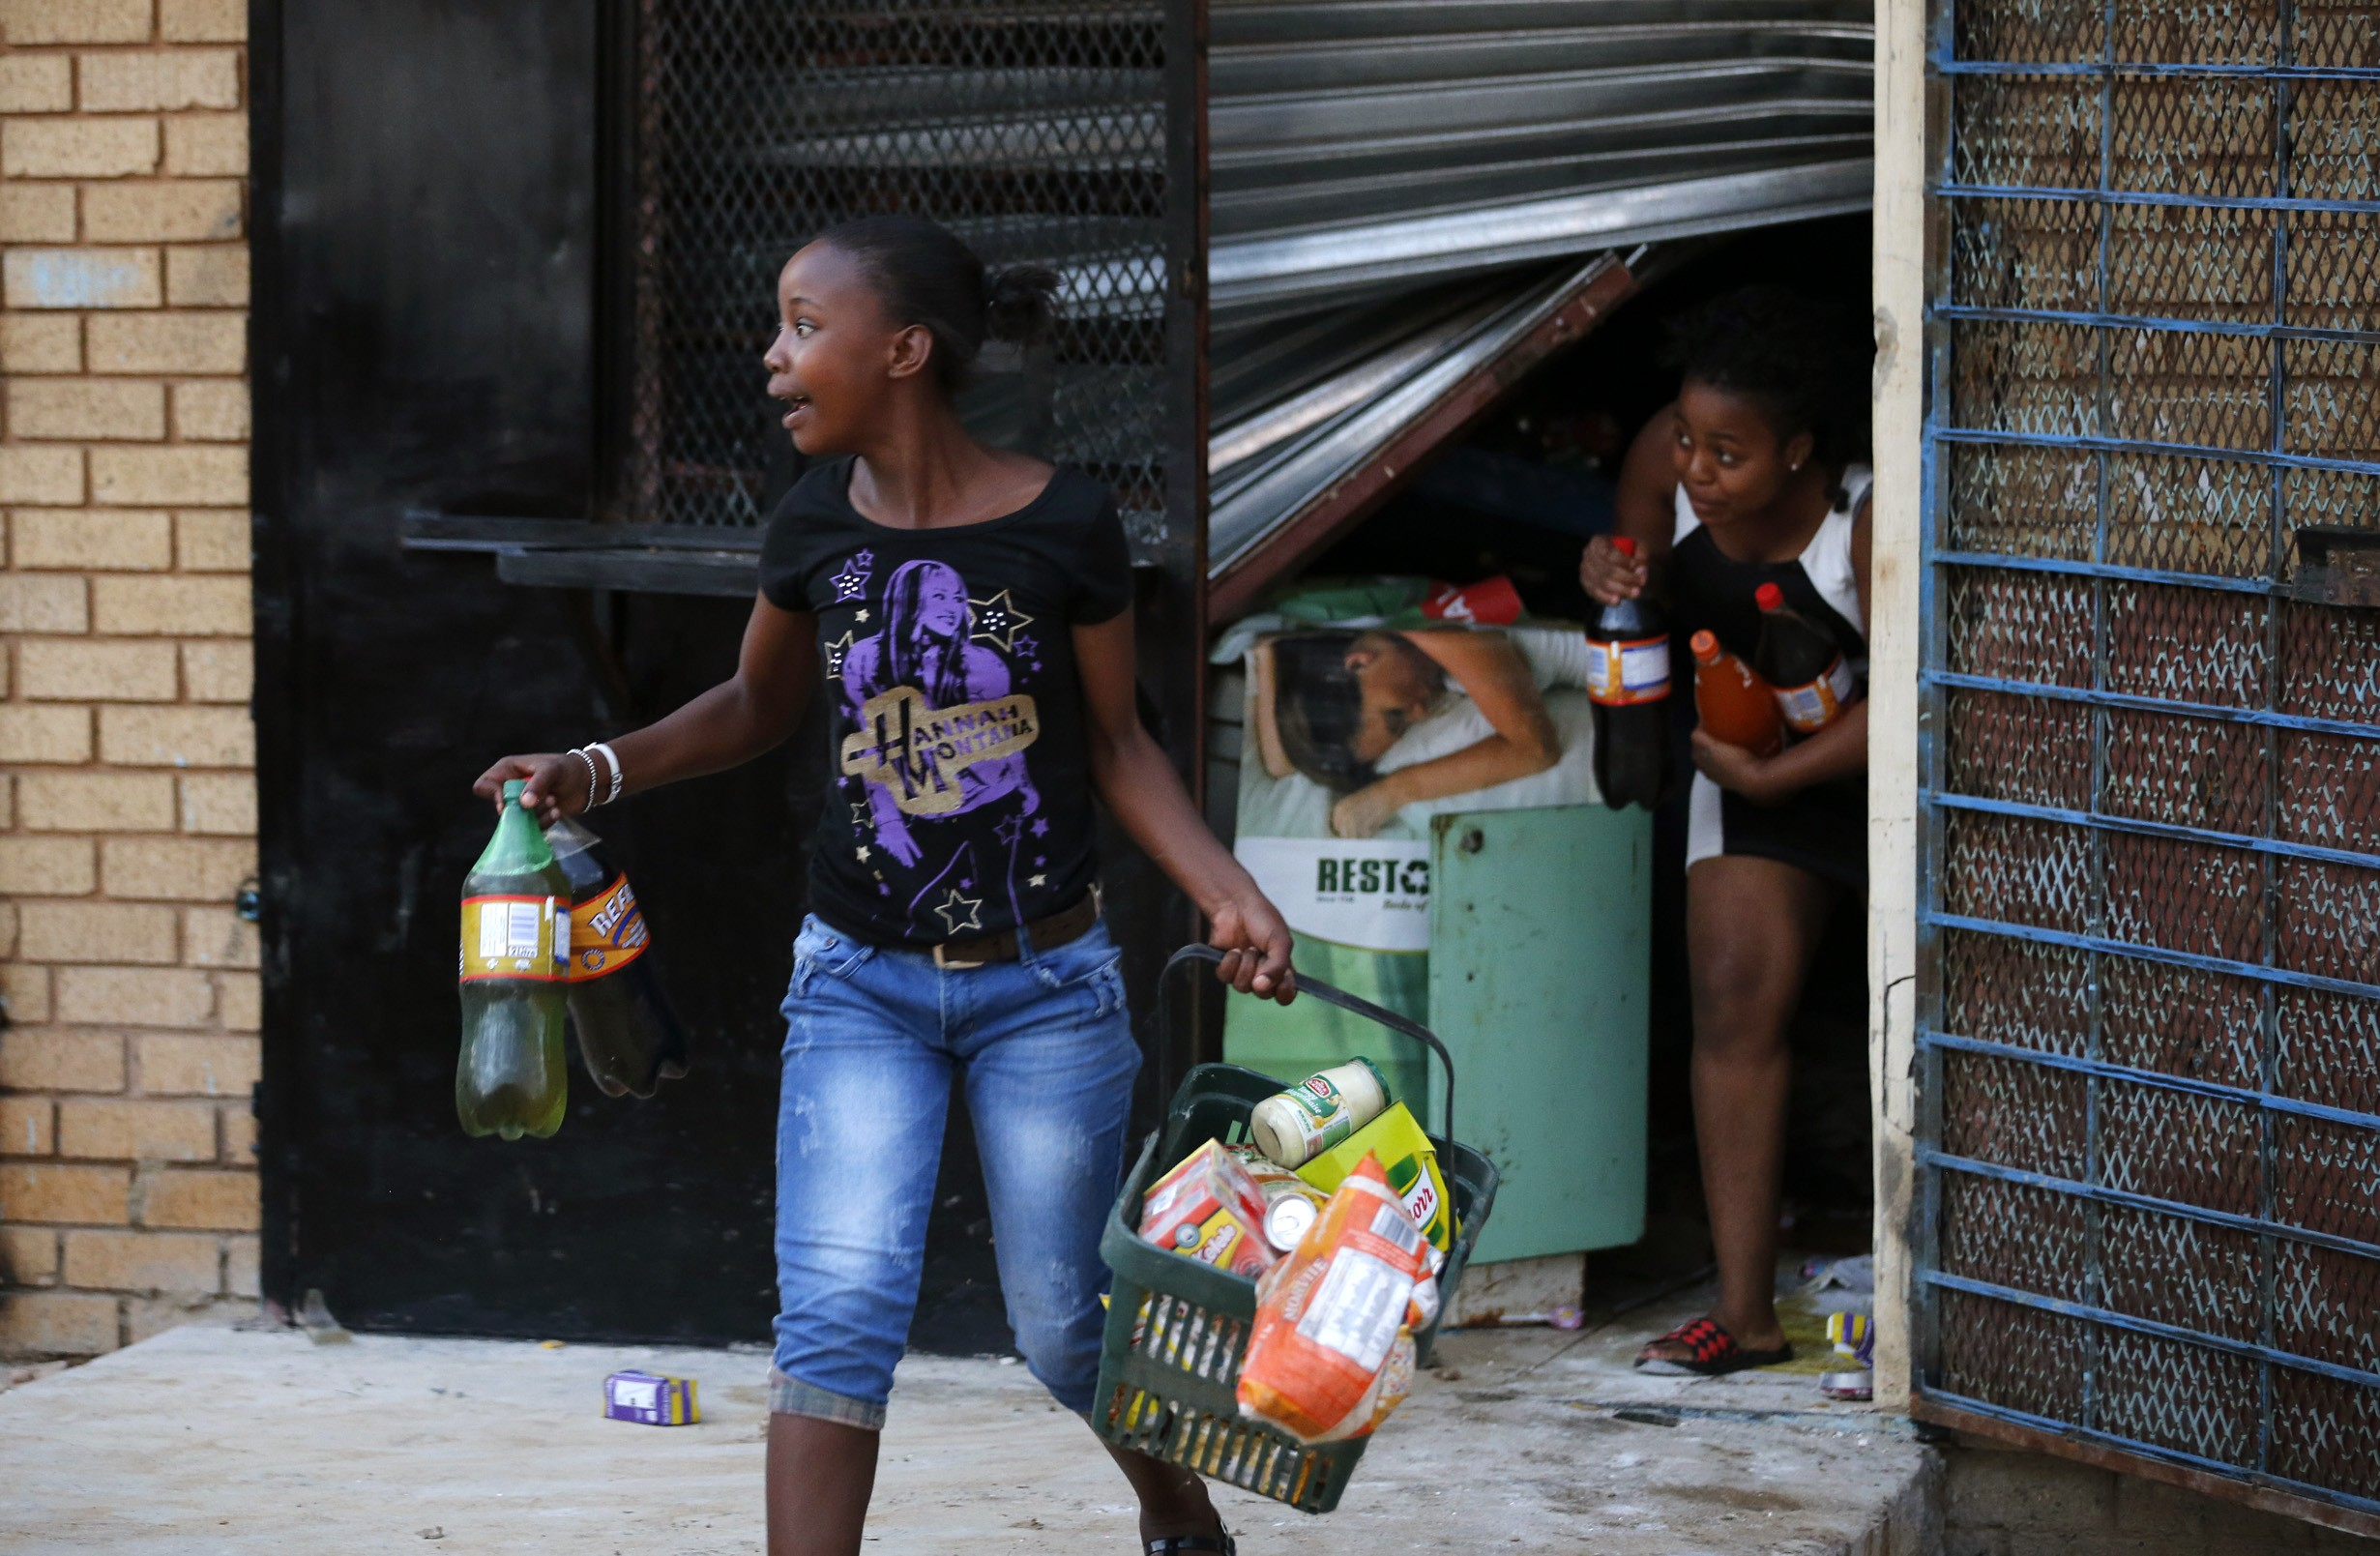 Looting in South Africa continues despite arrest of 497 suspects